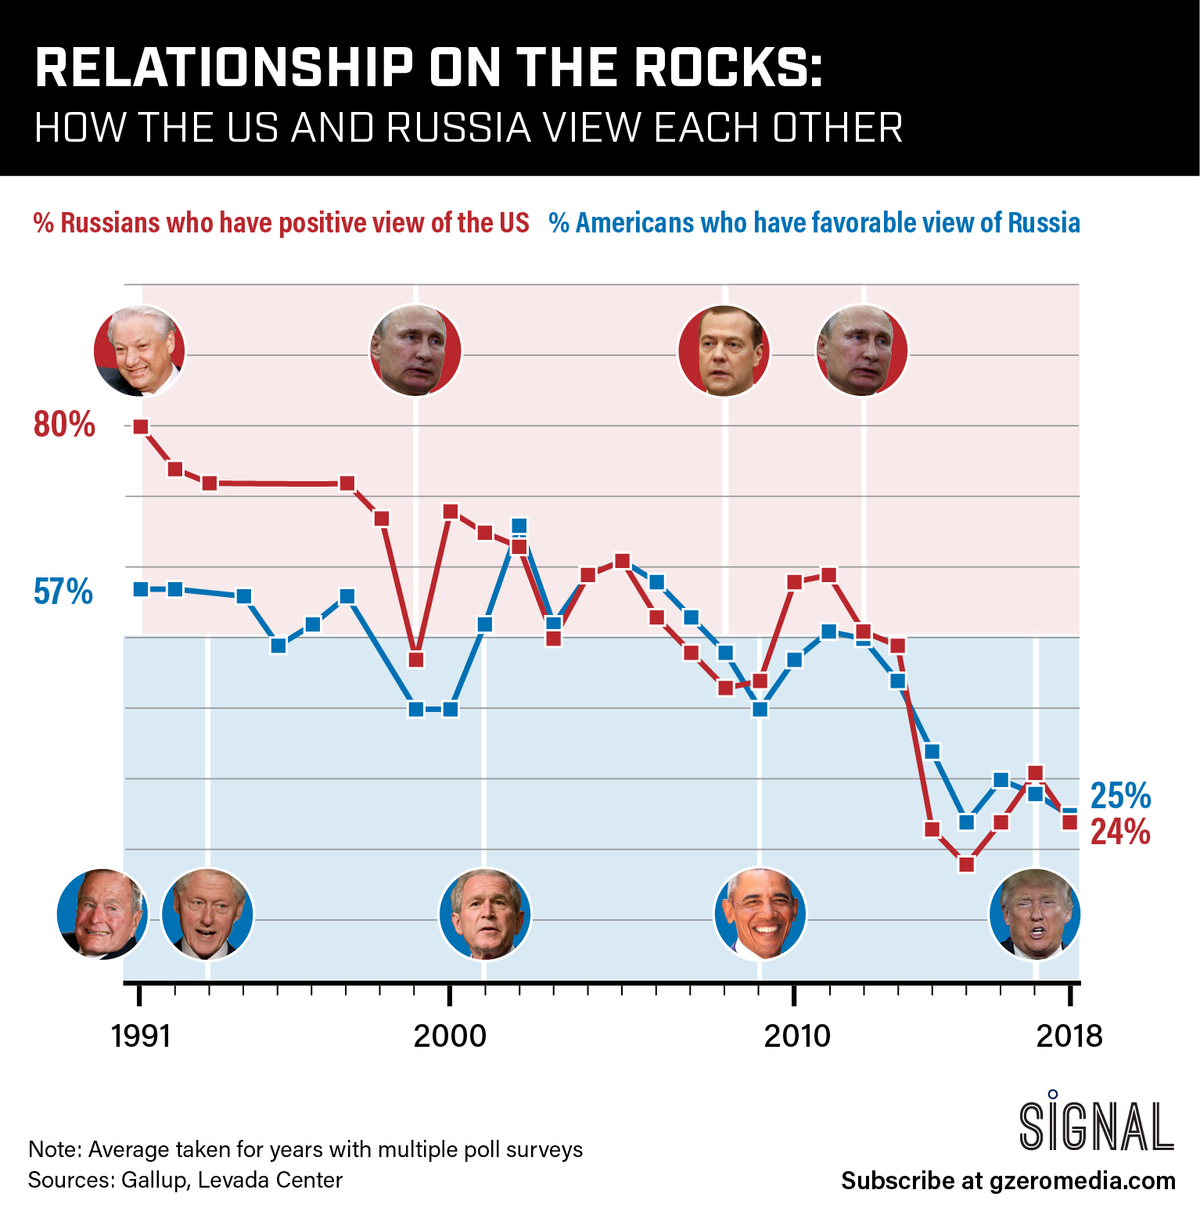 GRAPHIC TRUTH: RELATIONSHIP ON THE ROCKS